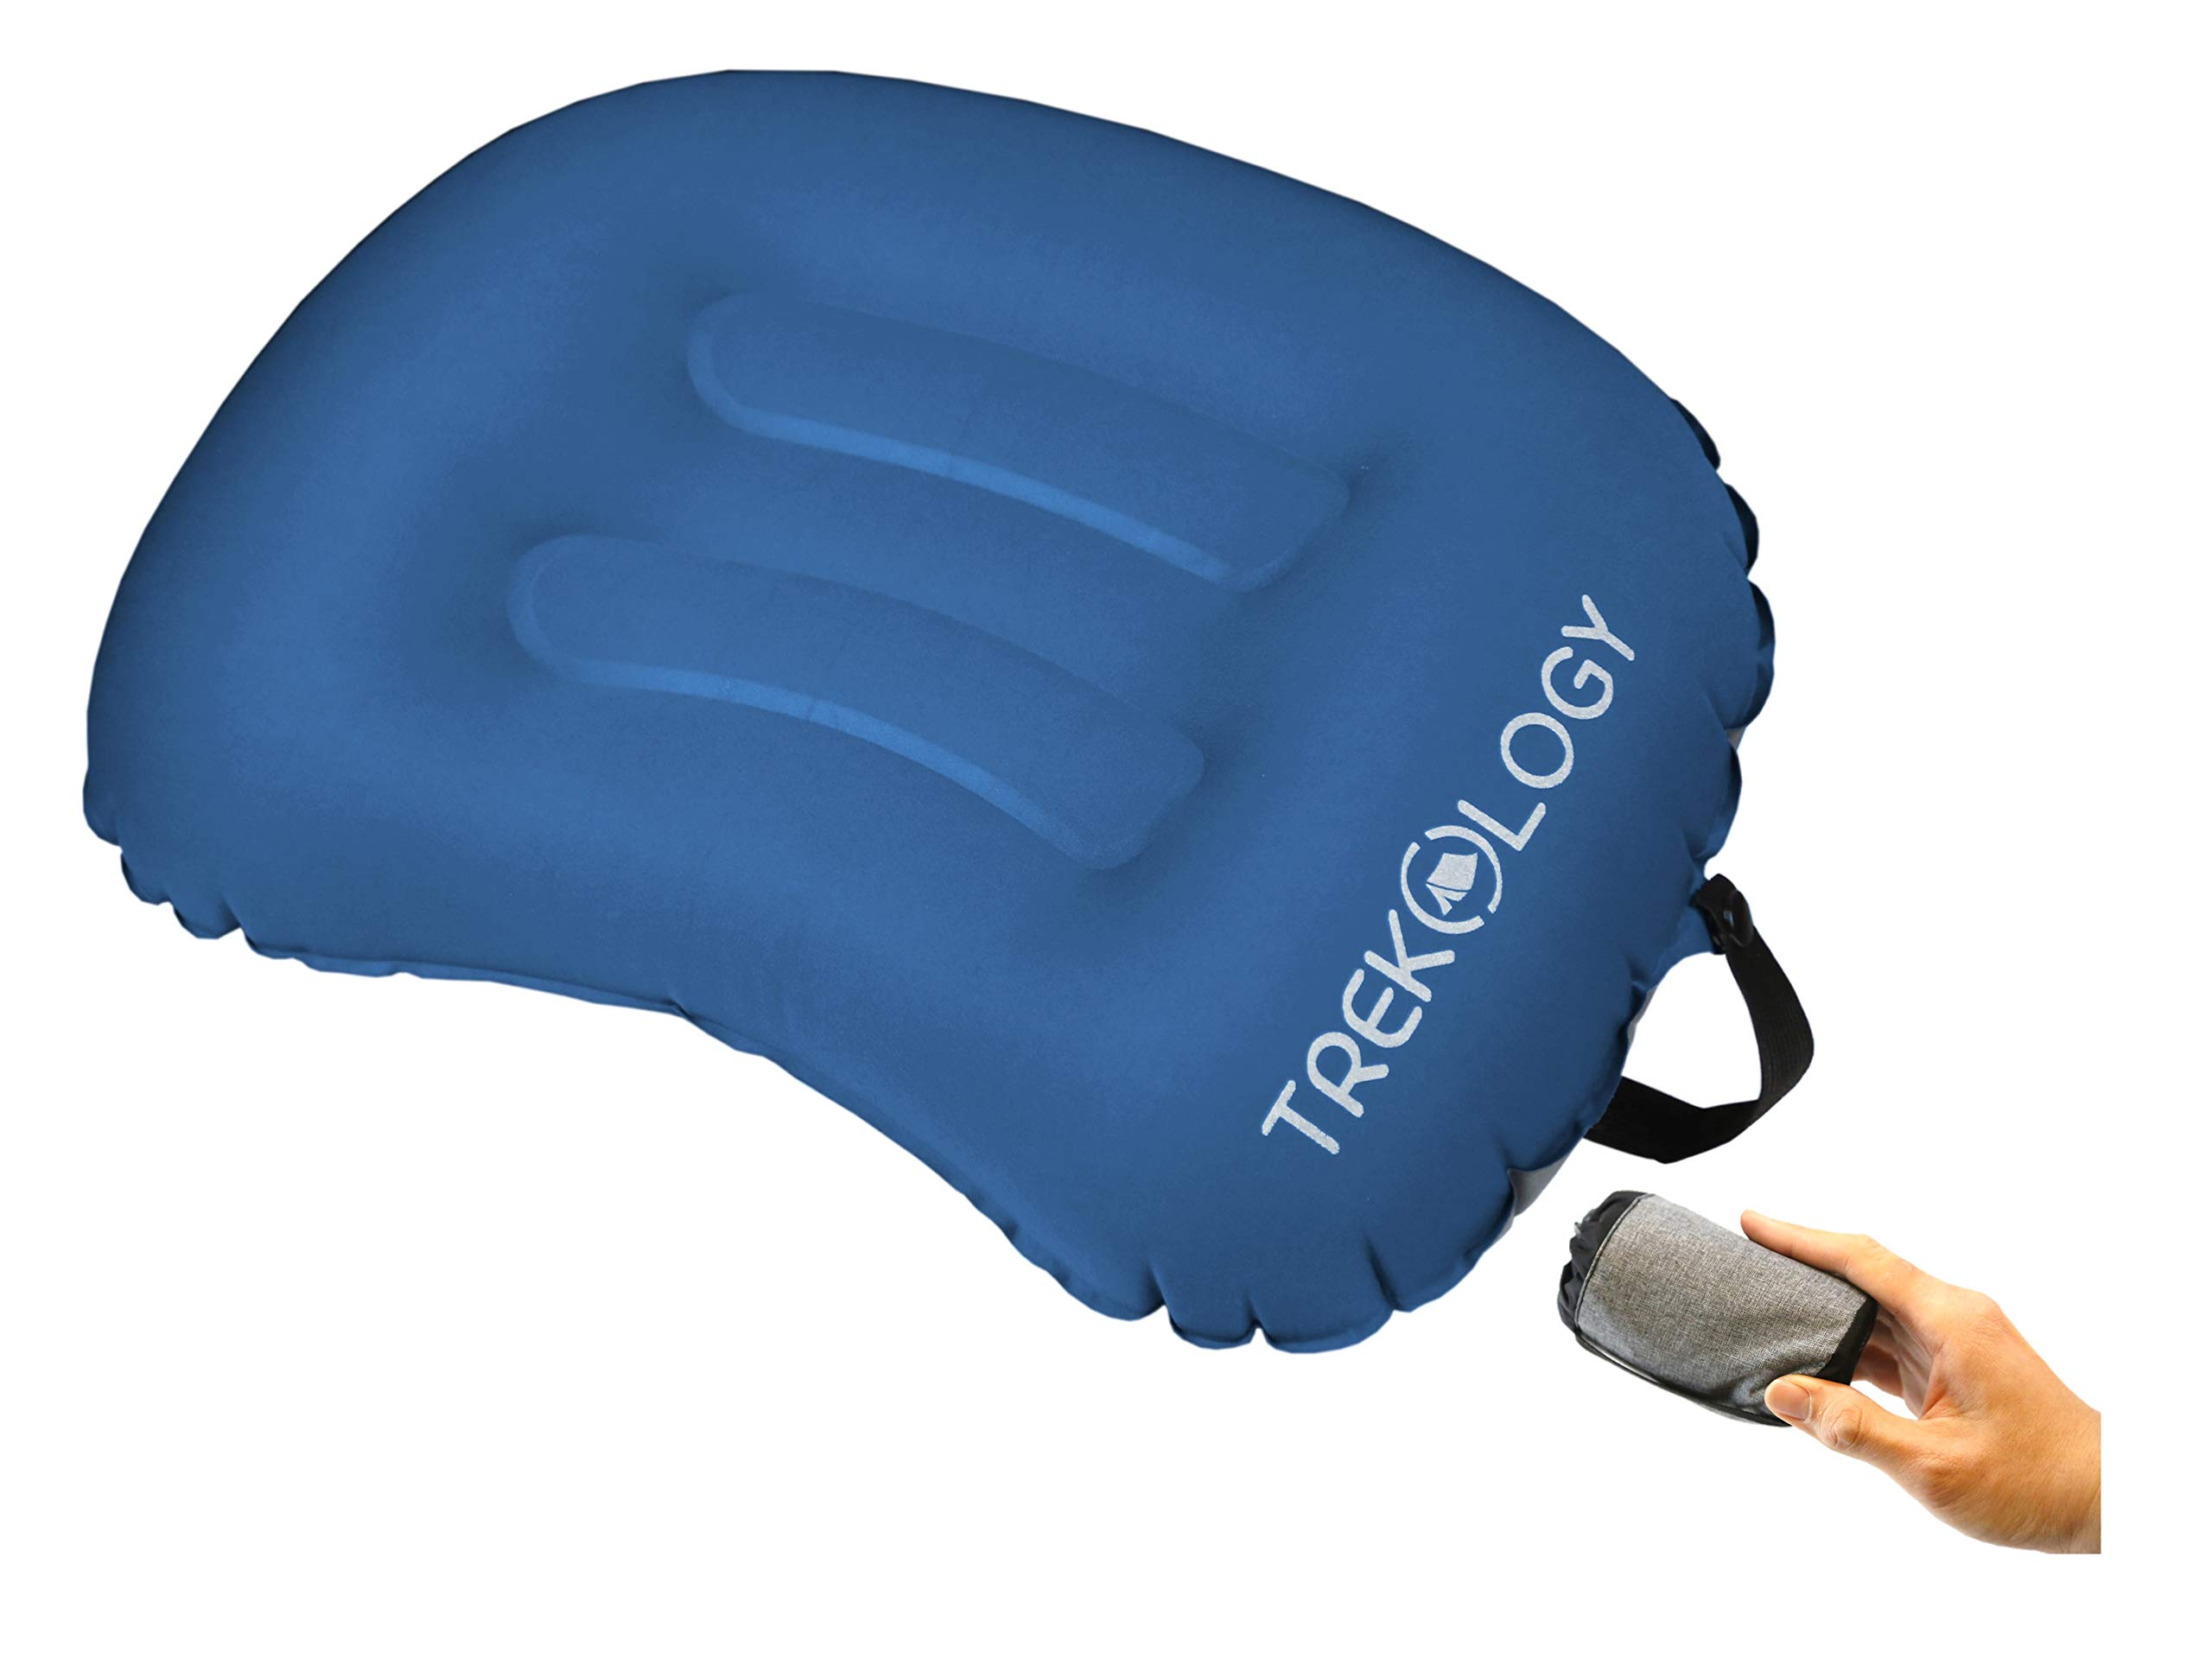 Trekology Ultralight Inflating Travel/Camping Pillows - Compressible, Compact, Inflatable, Comfortable, Ergonomic Pillow for Neck & Lumbar Support (Navy Blue with Latch Strap)